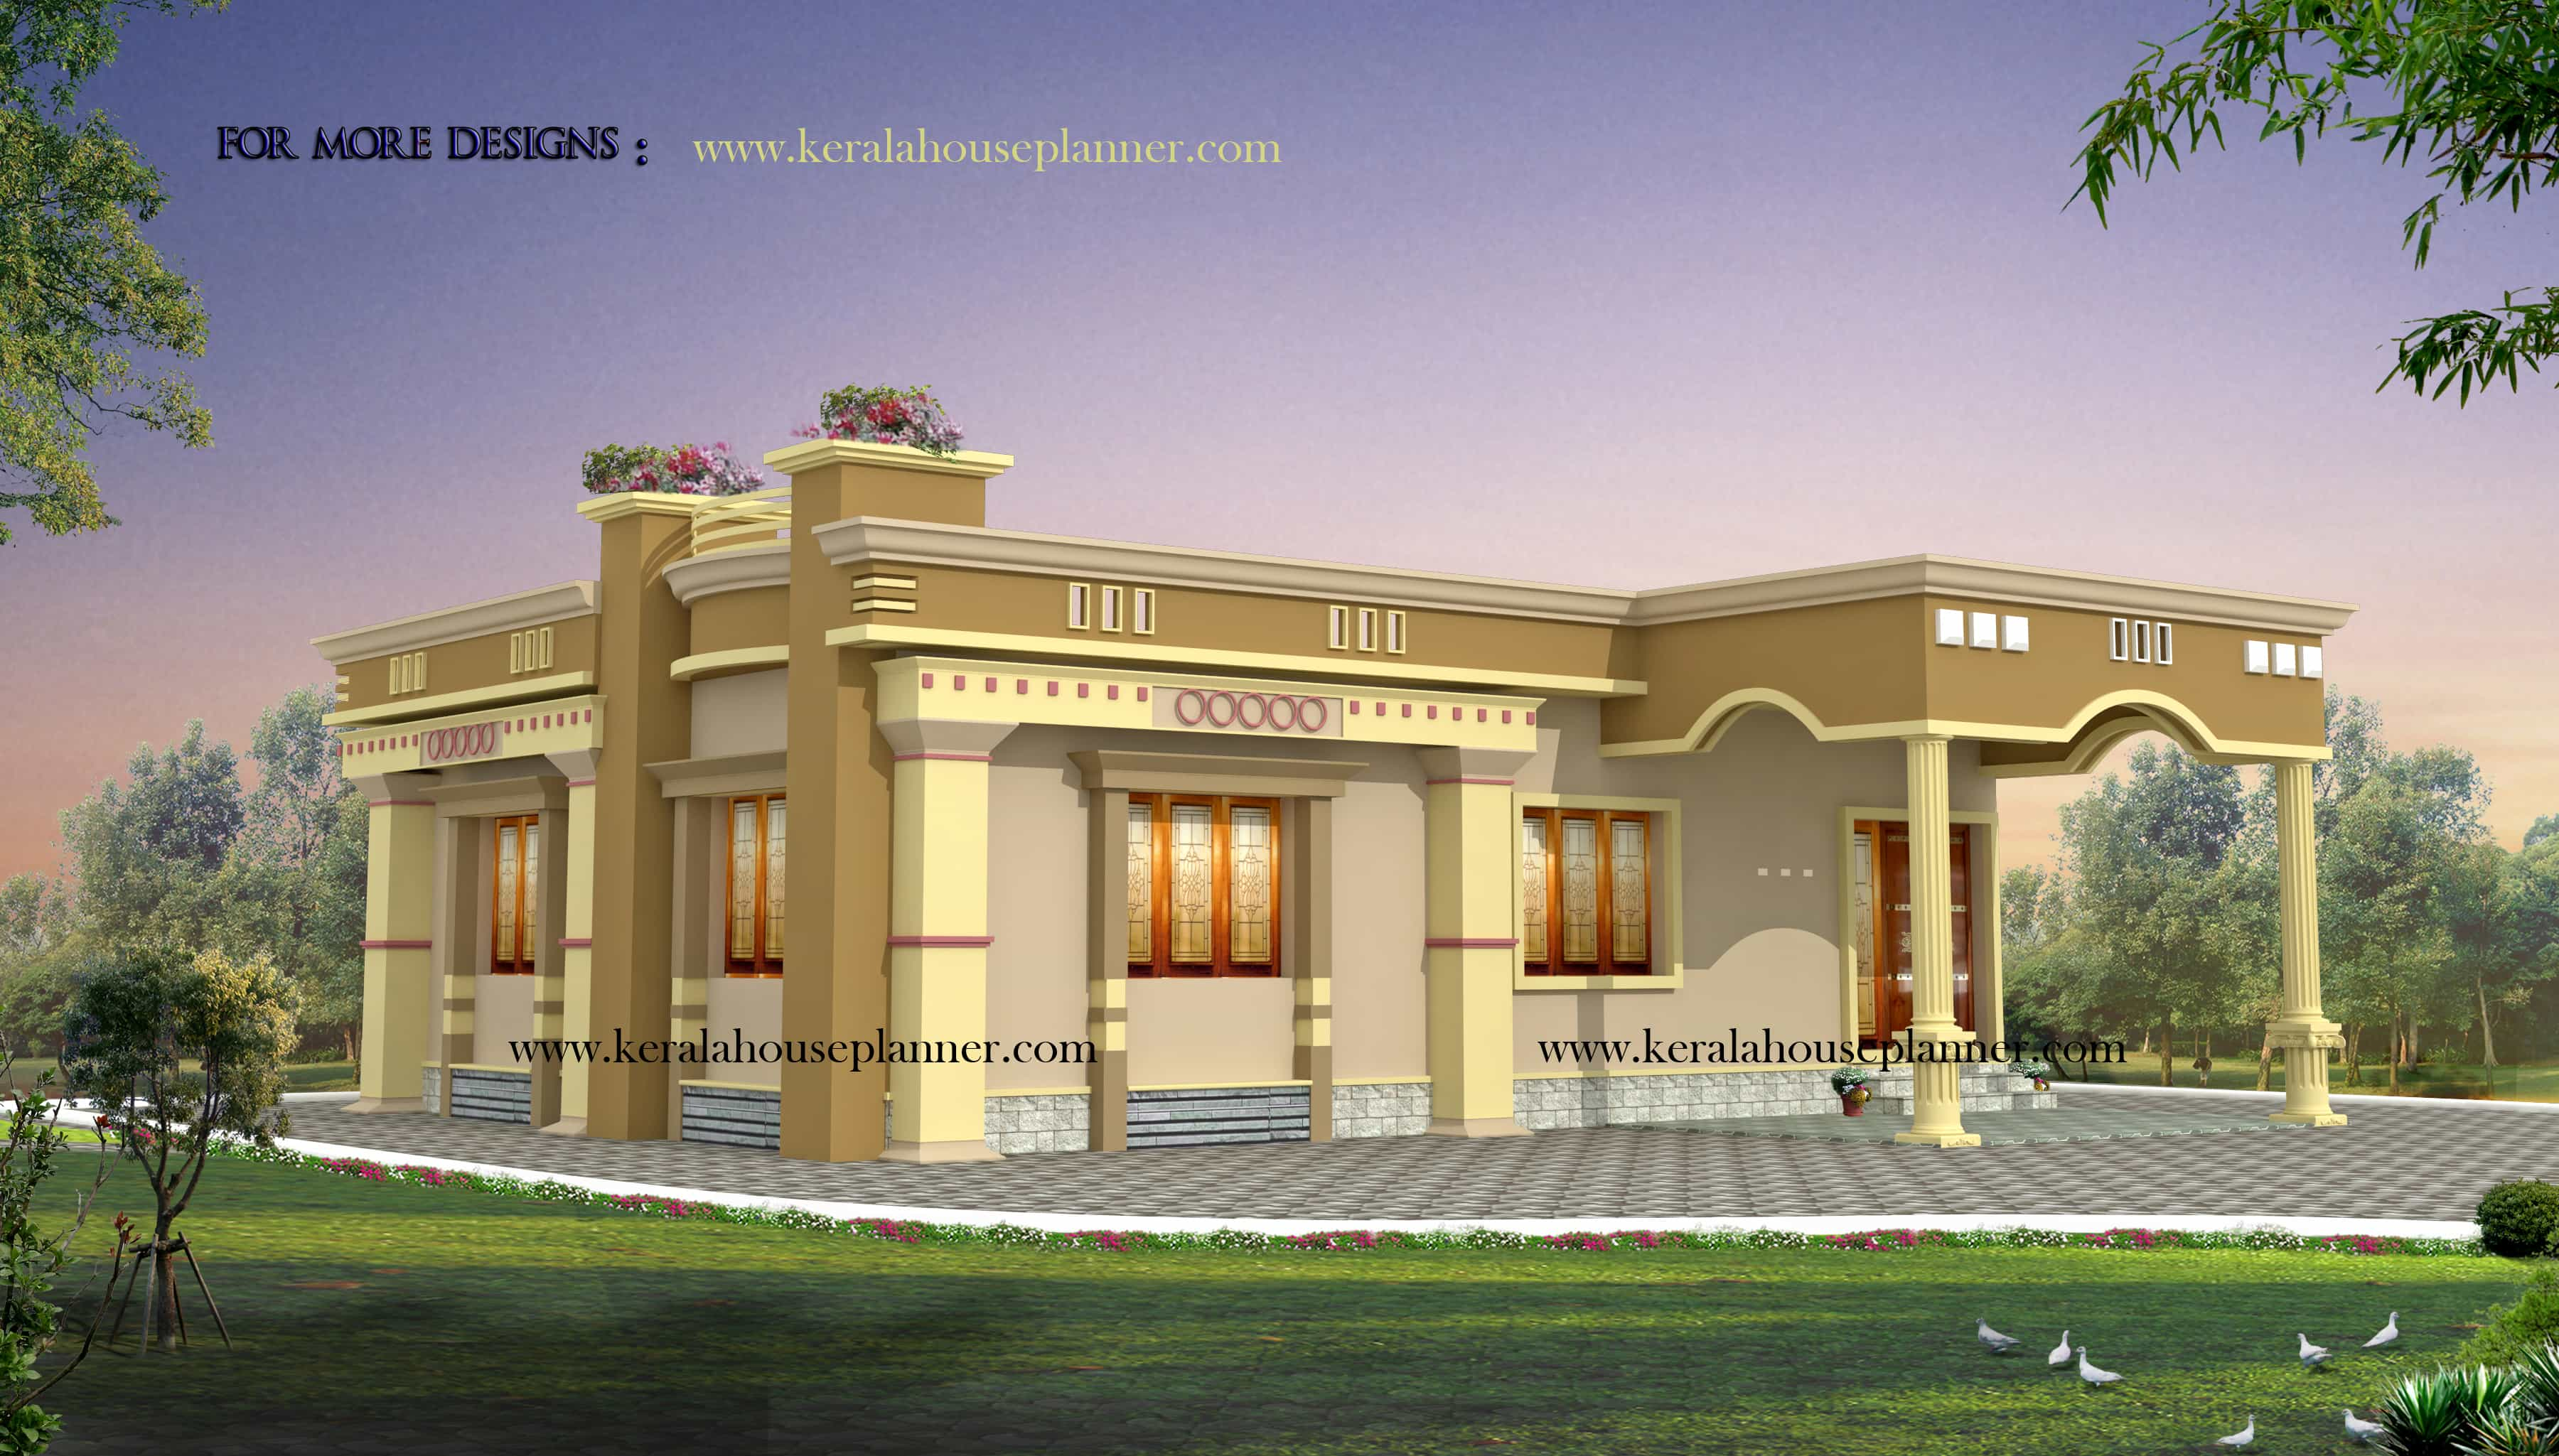 Kerala house plans 1200 sq ft with photos khp for Kerala style home designs and elevations